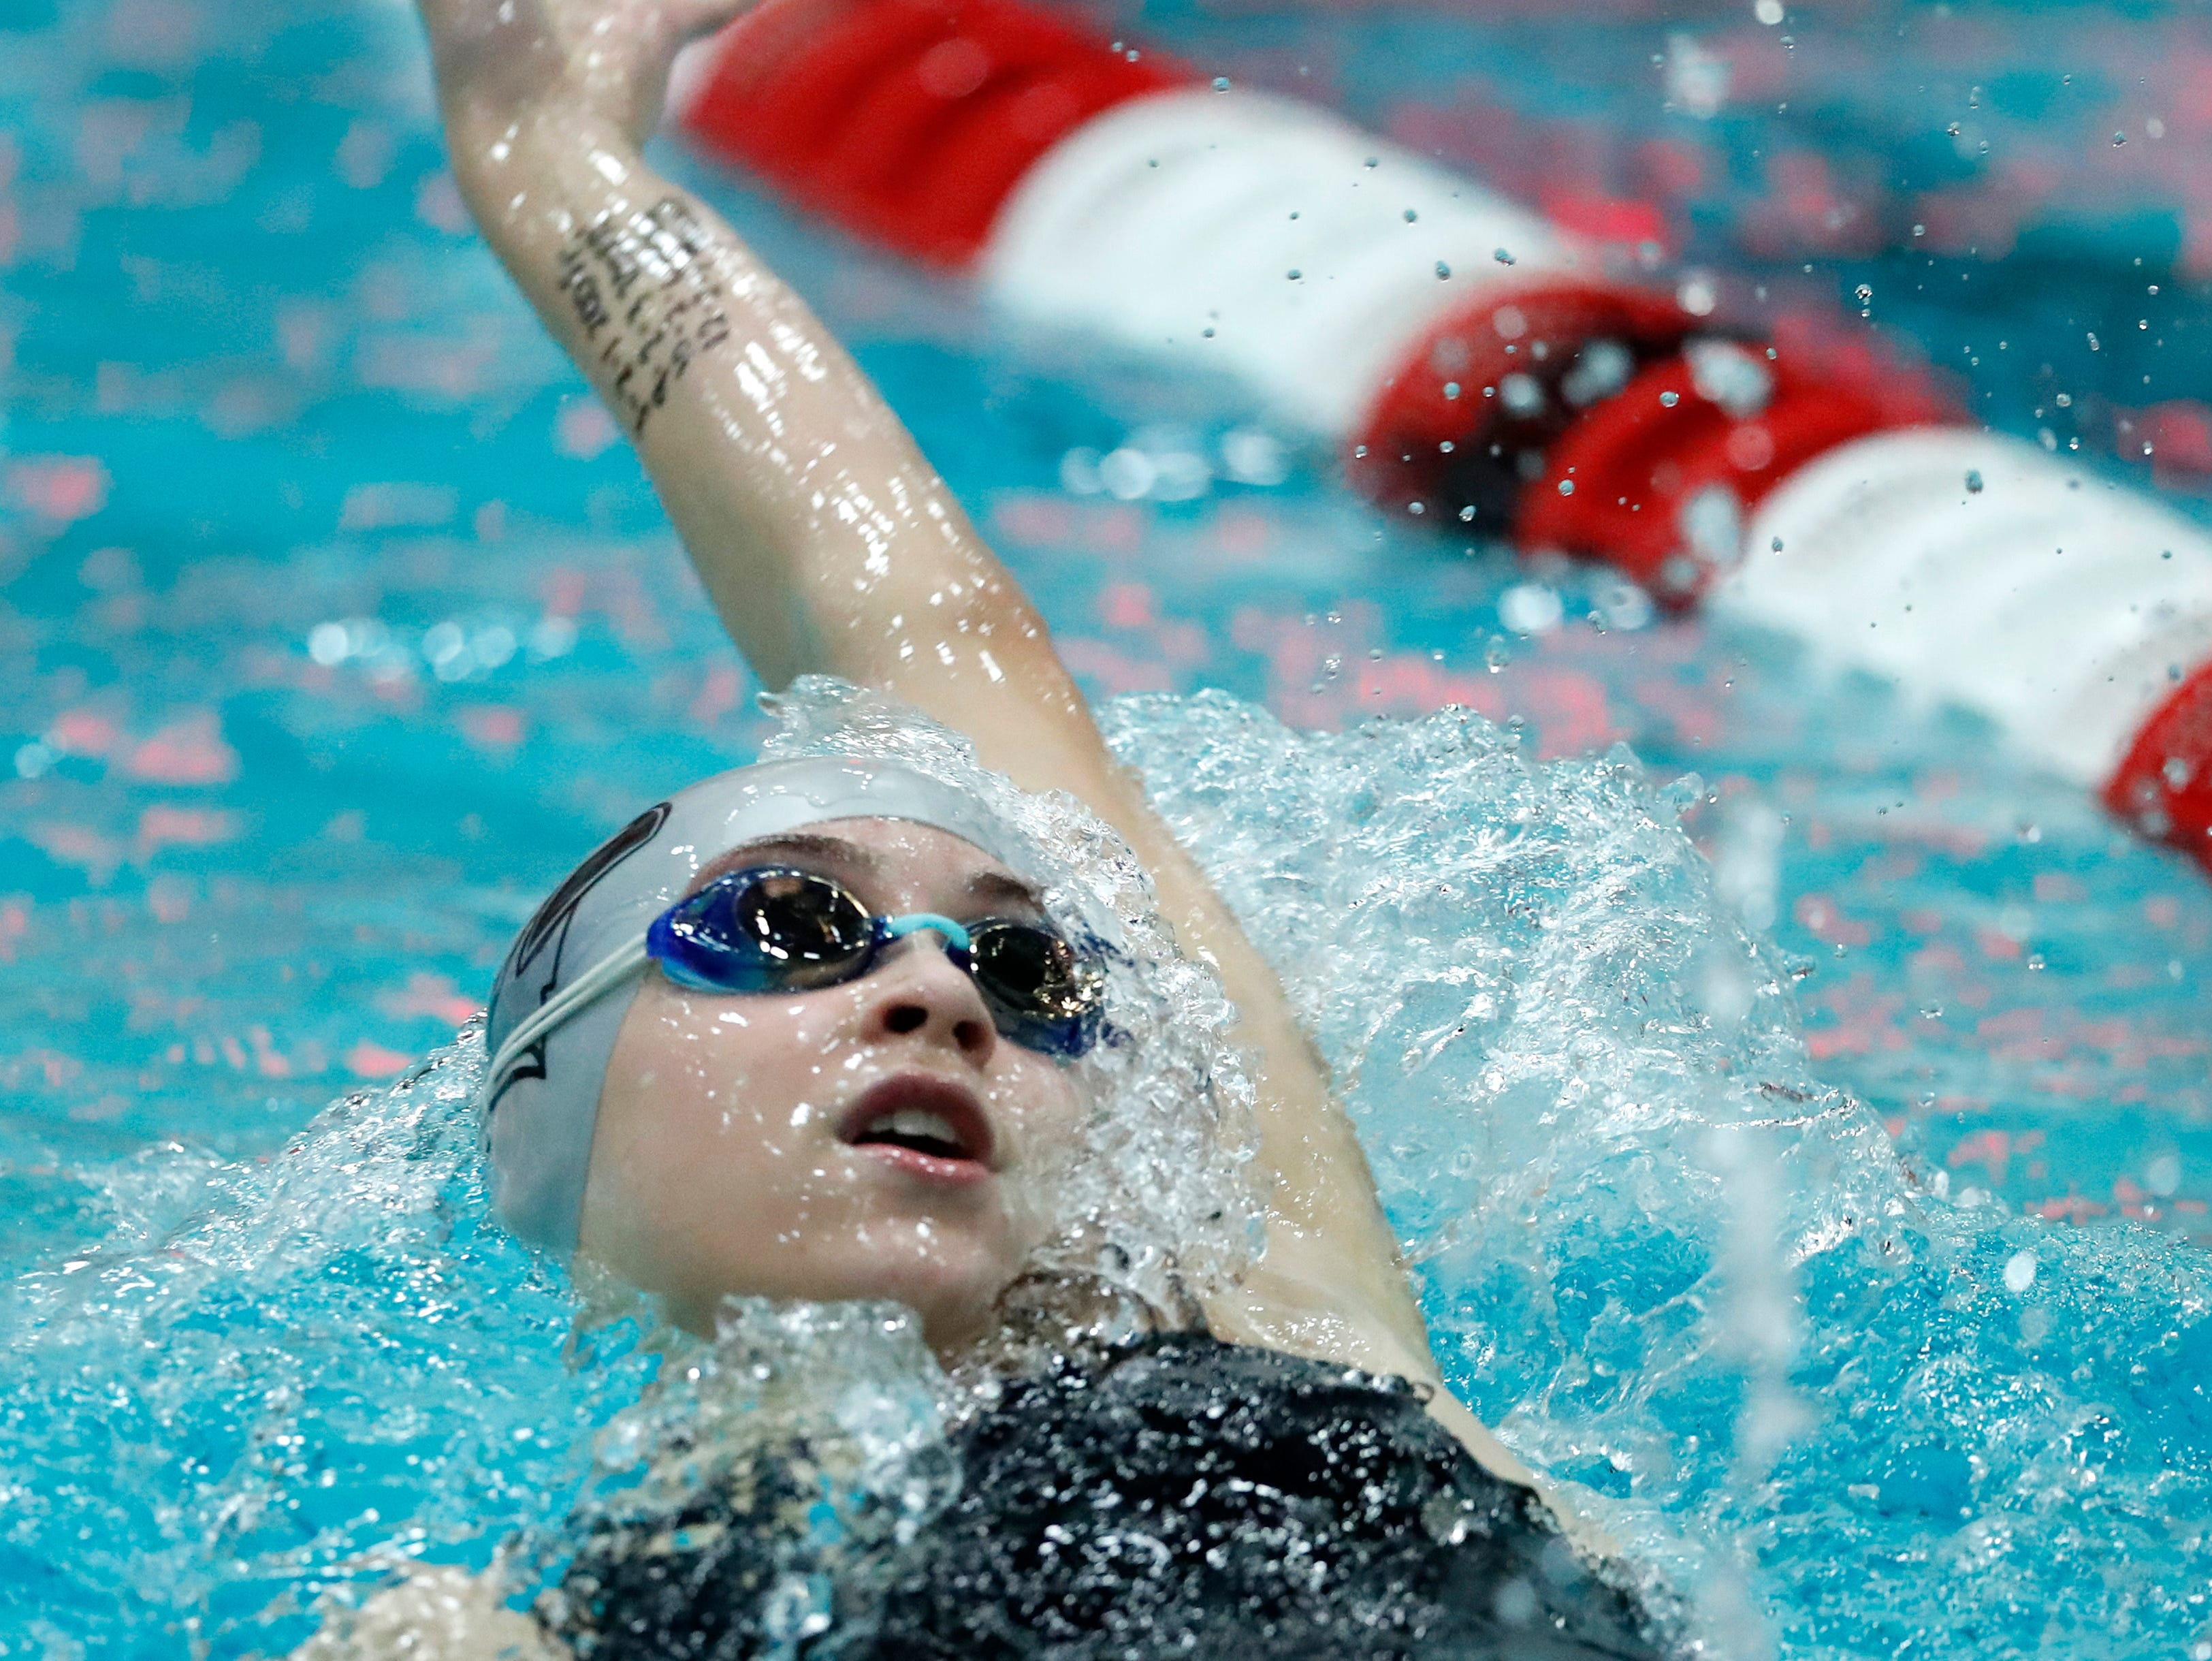 Merrill's Grace Schultz races in the 100 yard backstroke during the WIAA Division 2 State Swimming and Diving meet Friday, Nov. 9, 2018, at the UW Natatorium in Madison, Wis.Danny Damiani/USA TODAY NETWORK-Wisconsin